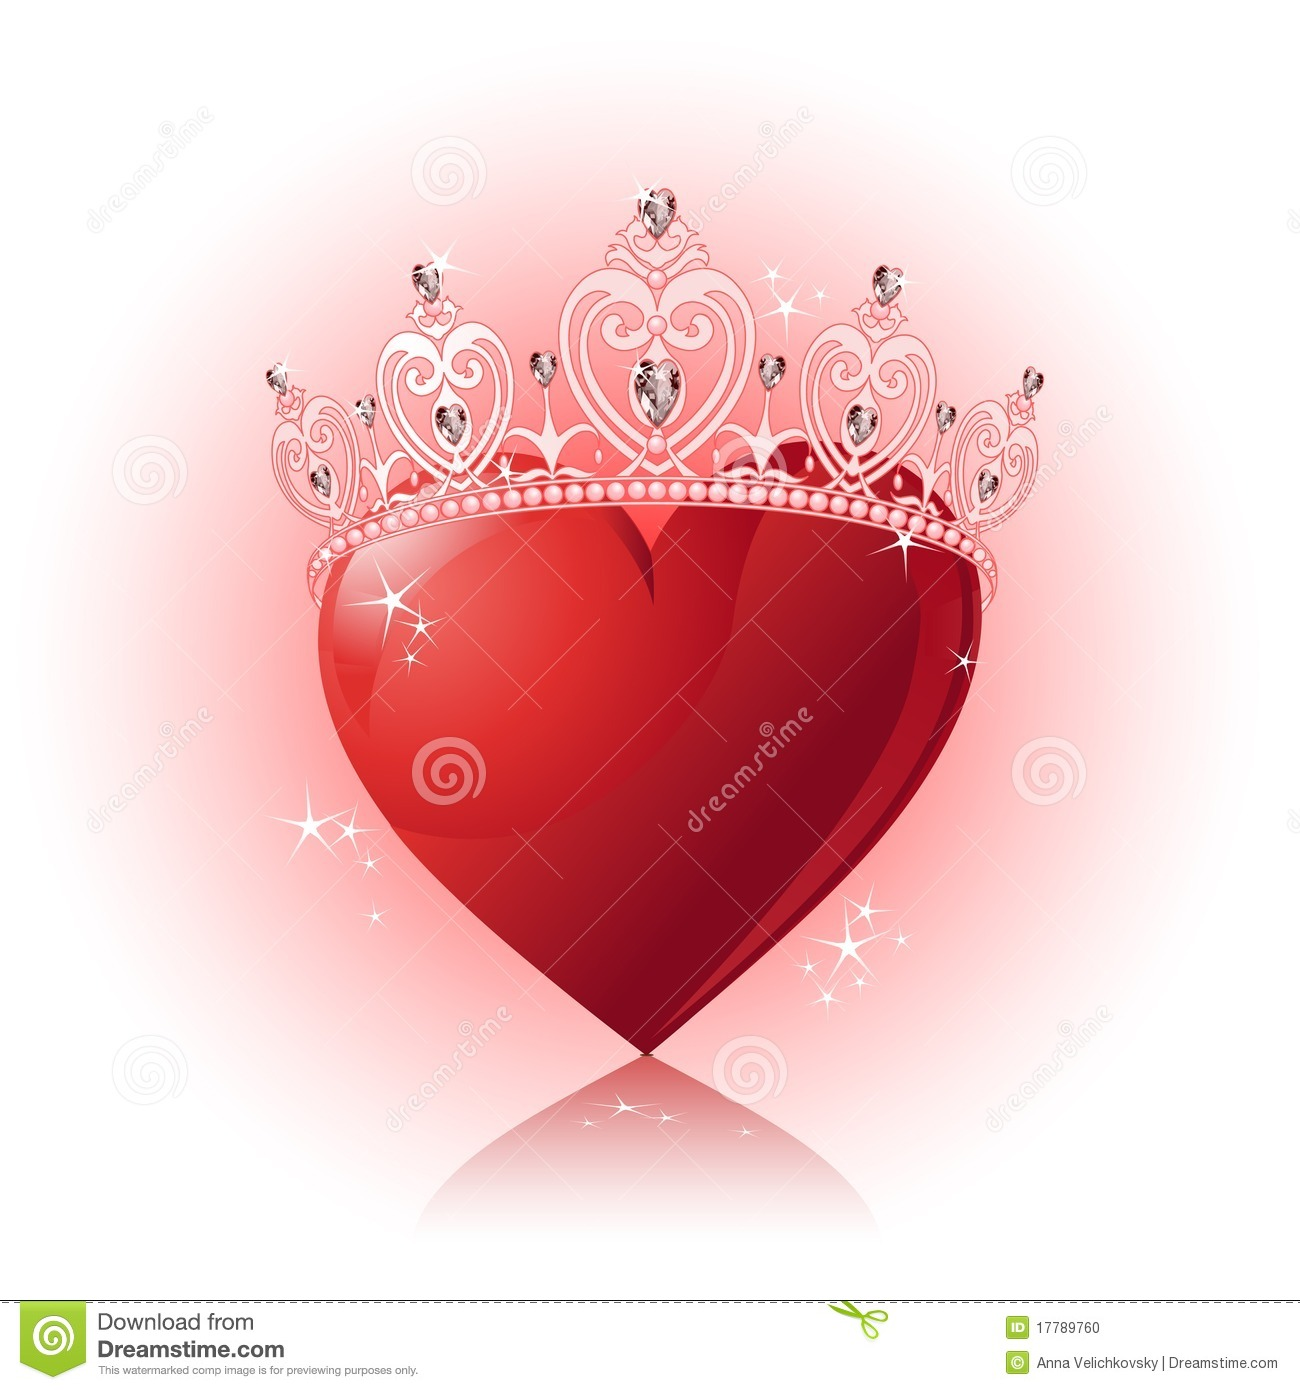 Crystal Heart With Crown Stock Photo - Image: 17789760